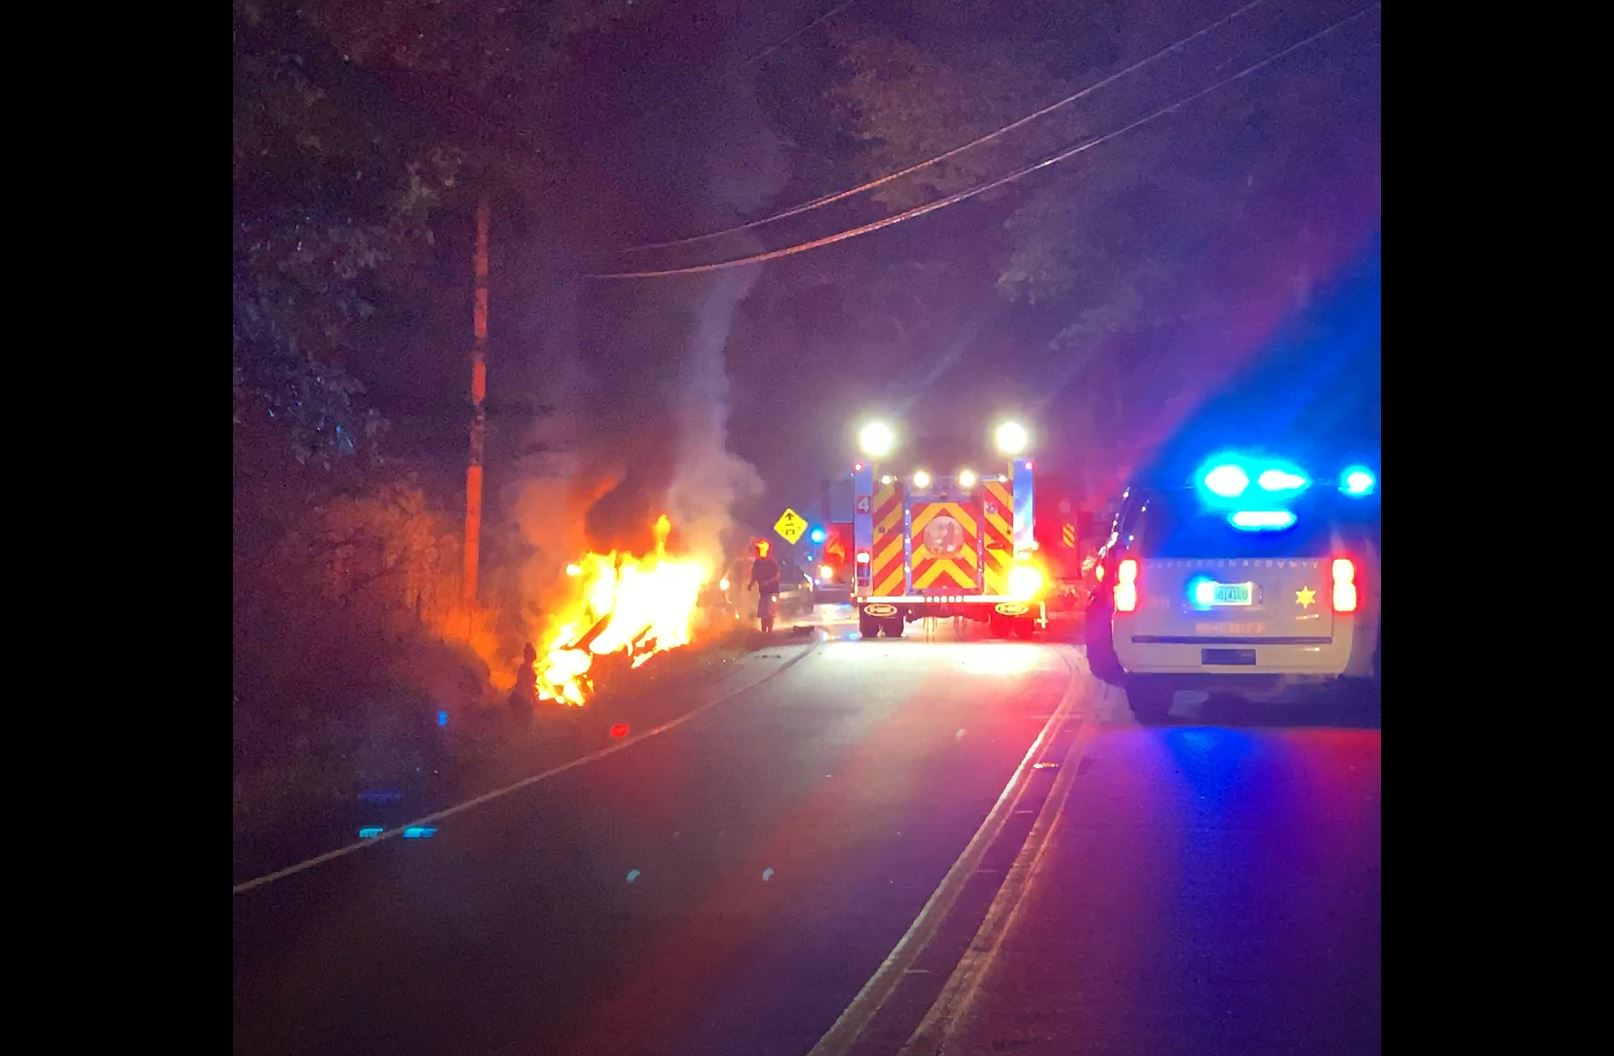 BREAKING: 3 transported after fiery crash on Dug Hollow Road in Pinson